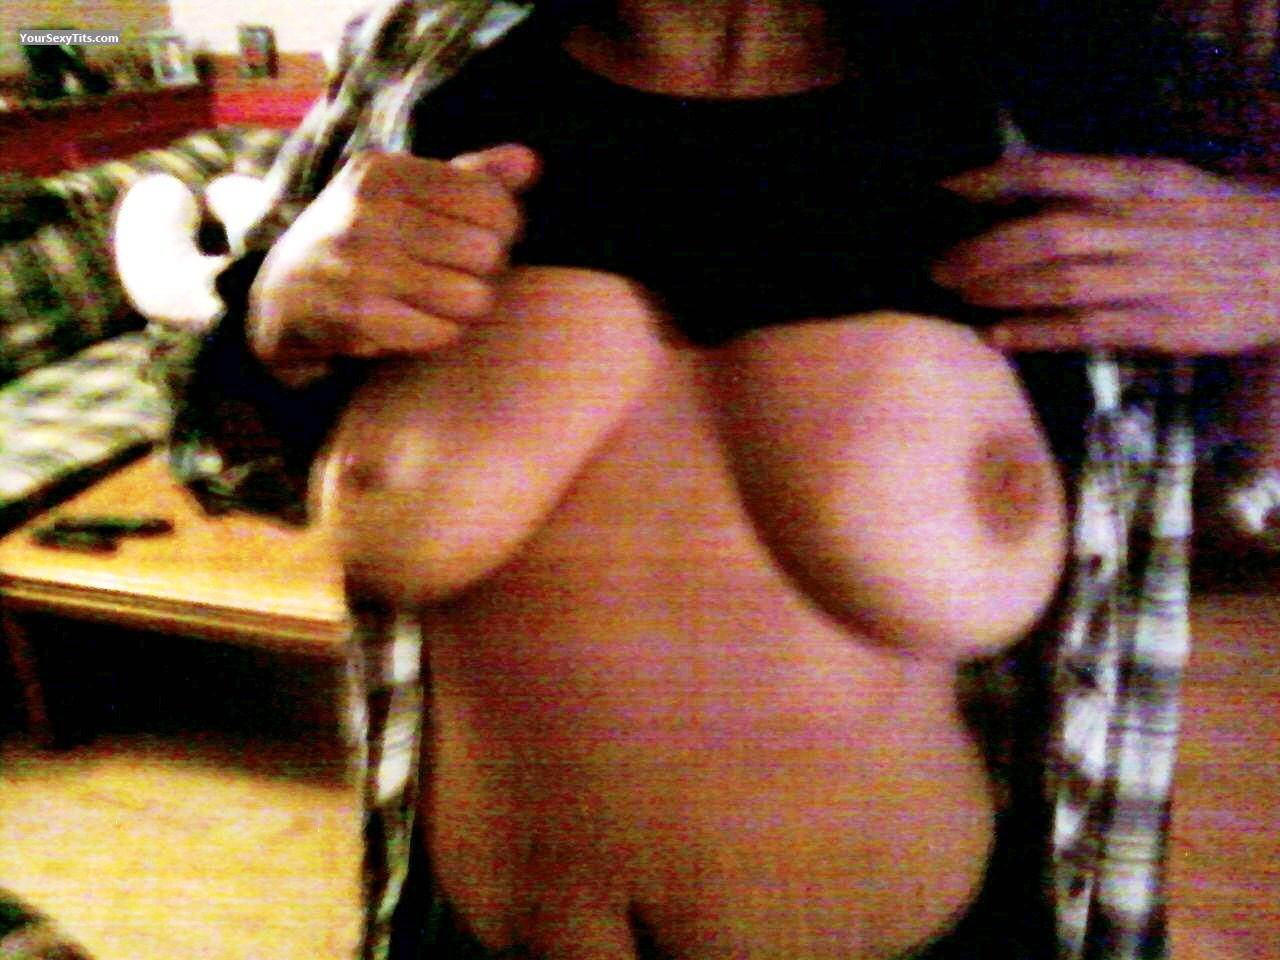 Big Tits Of My Ex-Girlfriend Genie